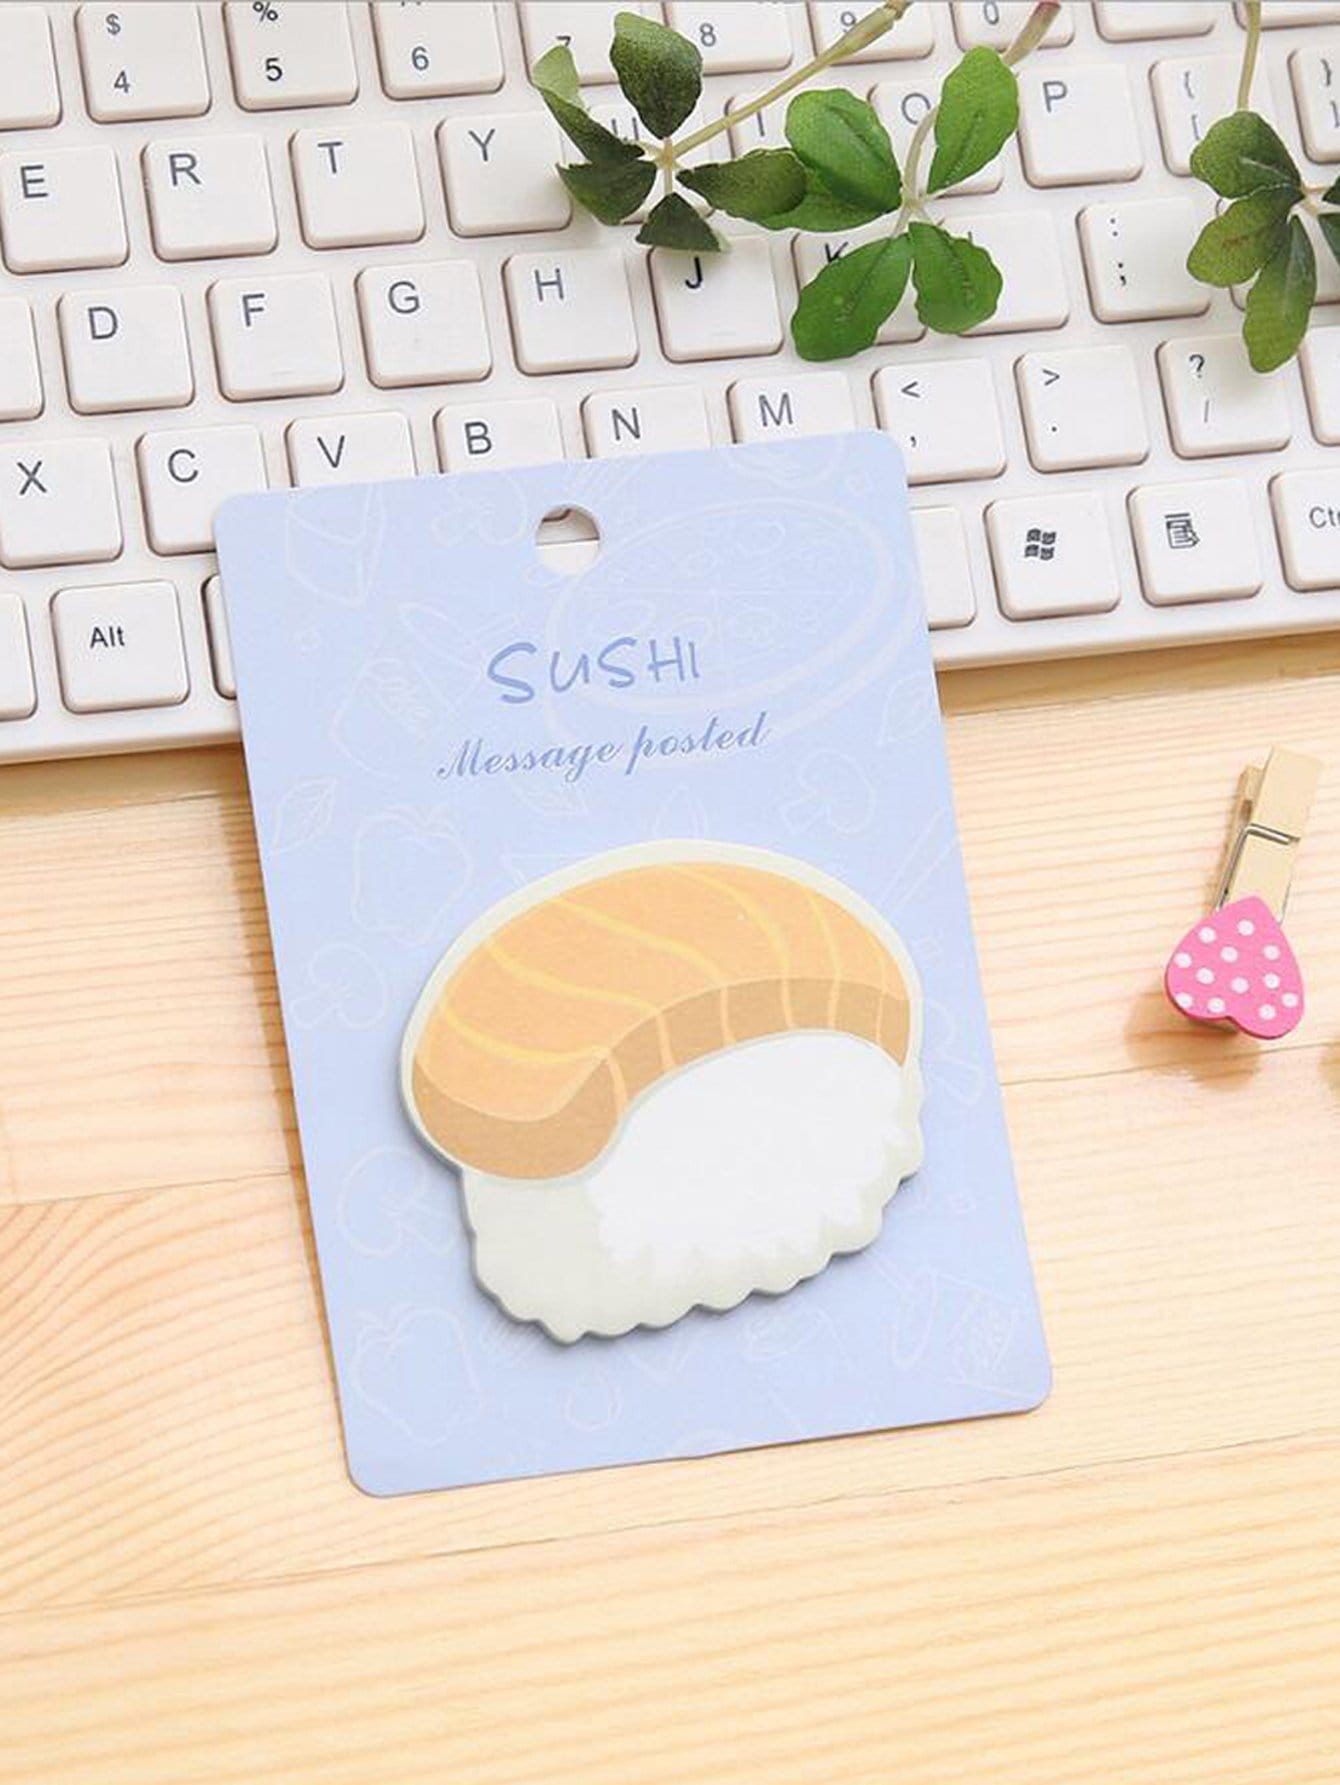 Sushi Sticky Note 30pcs sun sushi